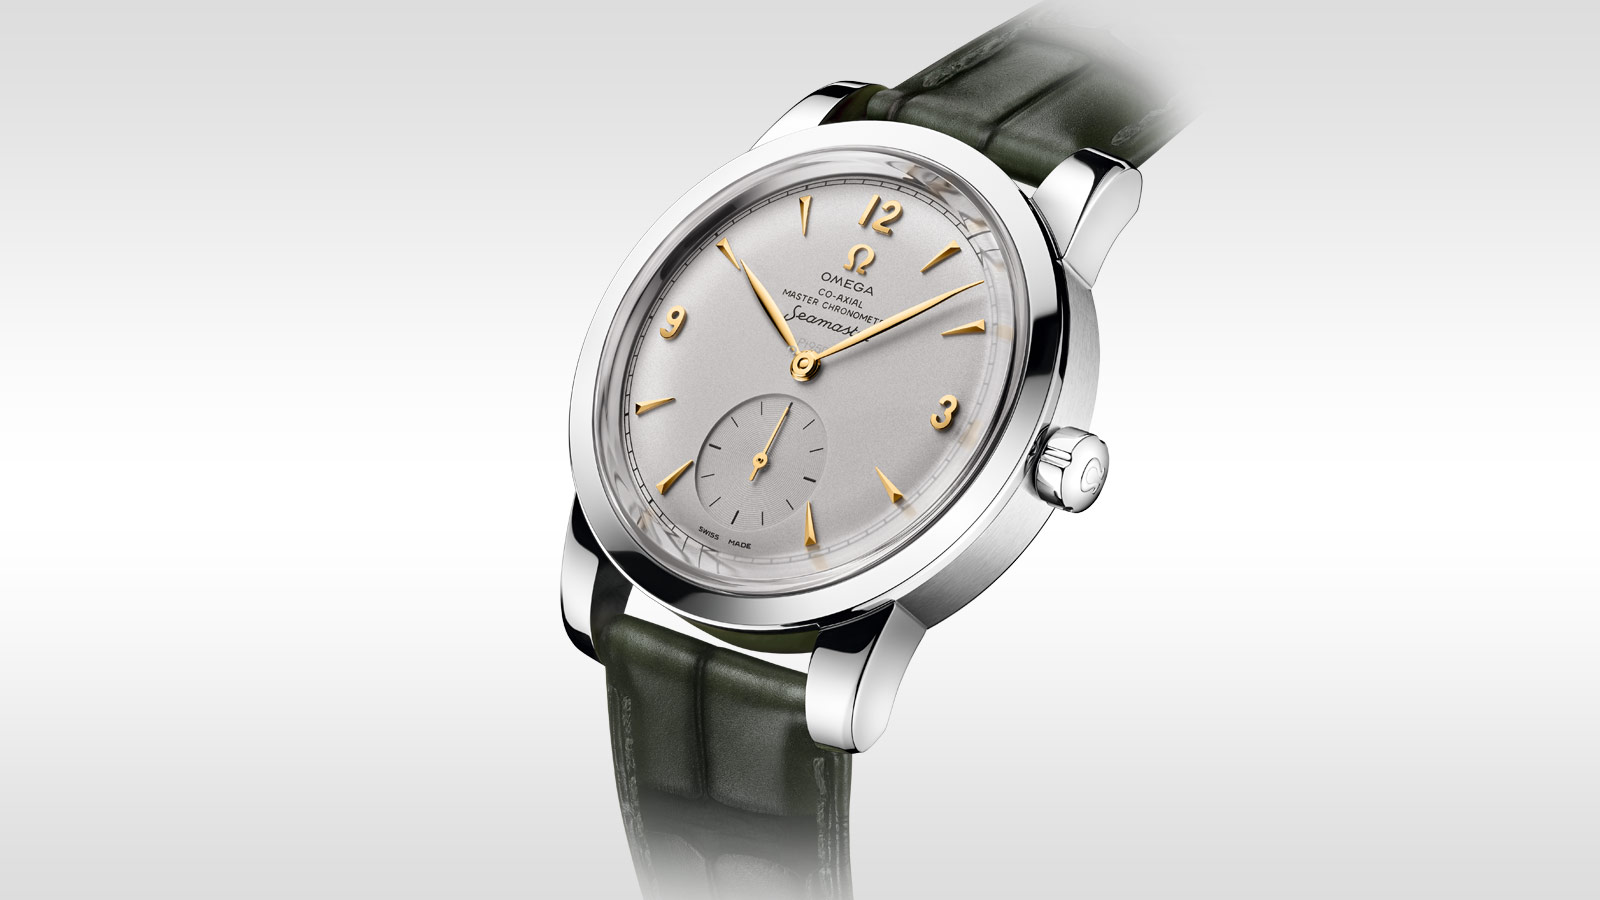 Seamaster シーマスター 1948 シーマスター 1948 Omega Co‑Axial Master Chronometer Small Seconds 38 mm - 511.93.38.20.99.001 - ビュー 2